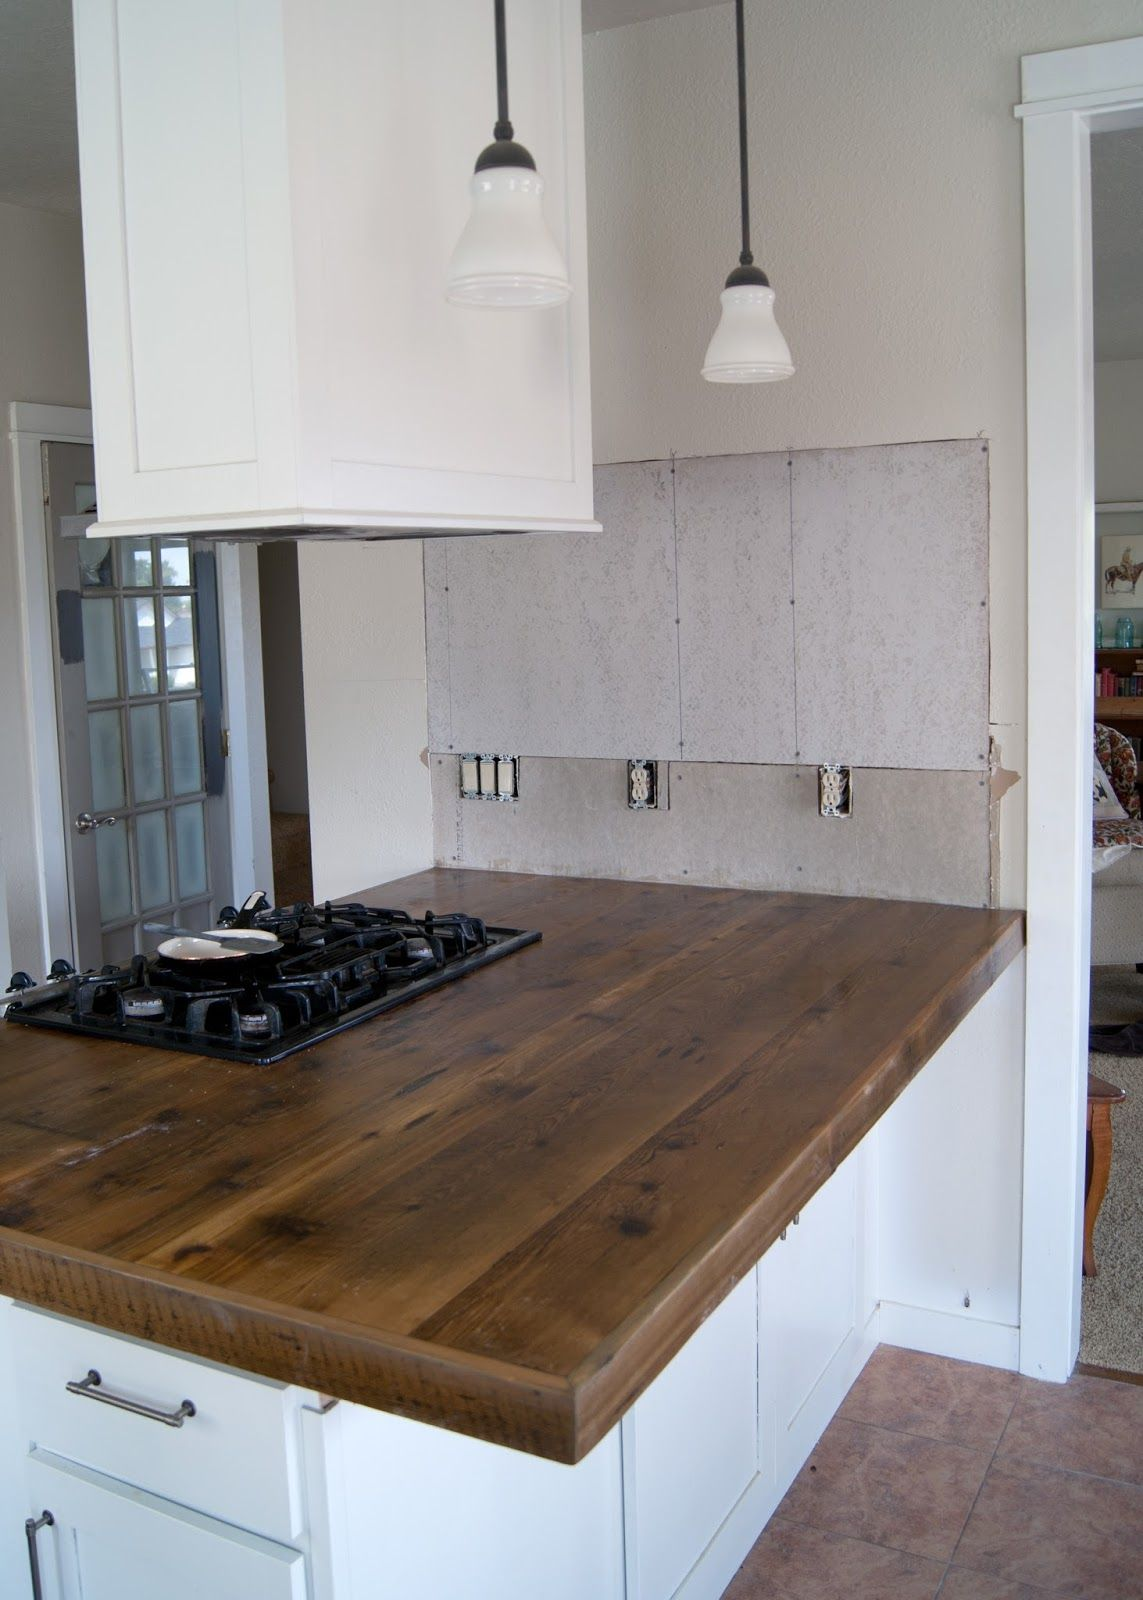 Diy Reclaimed Wood Countertop In 2019 Woodworking Diy